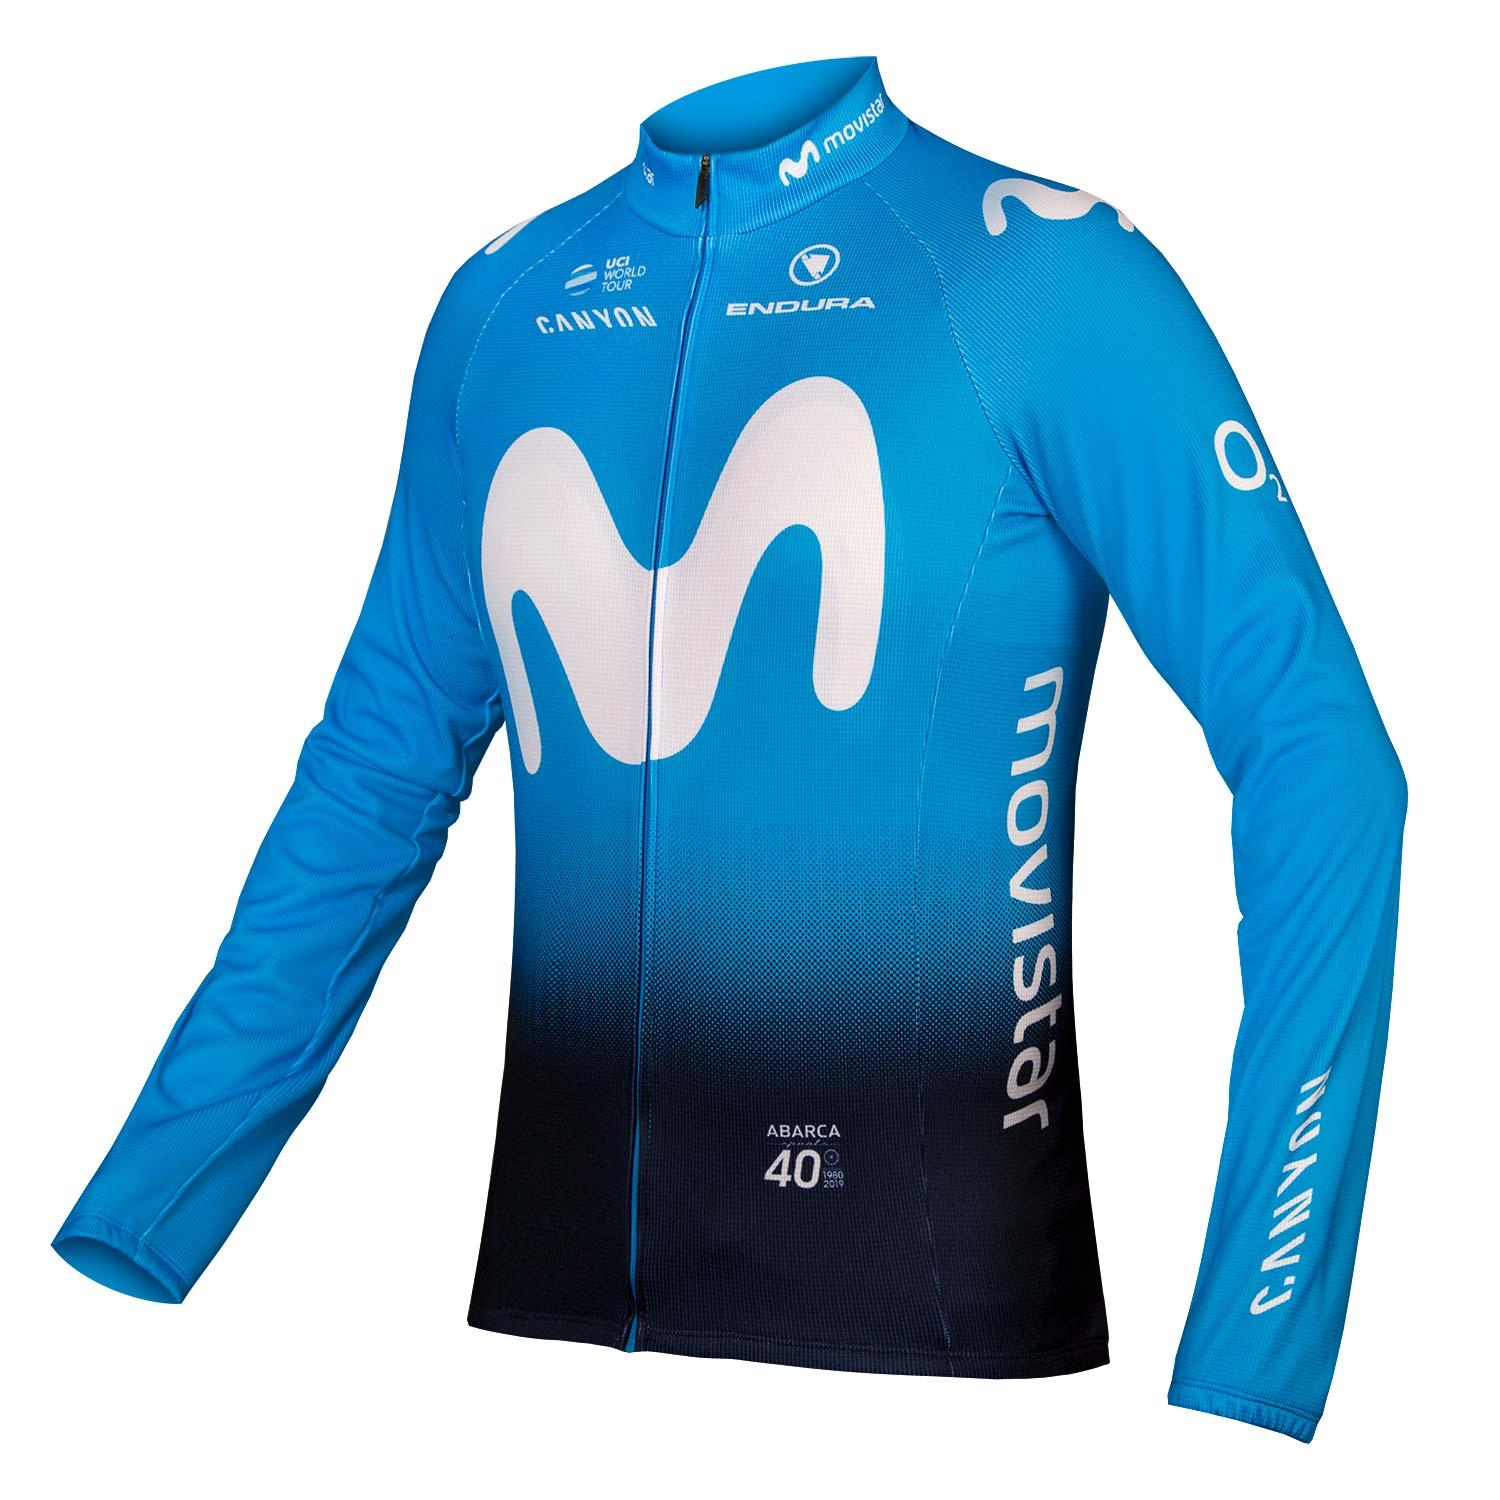 | Endura Fietsshirt lange mouwen Heren  / Movistar Team Lange mouw shirt